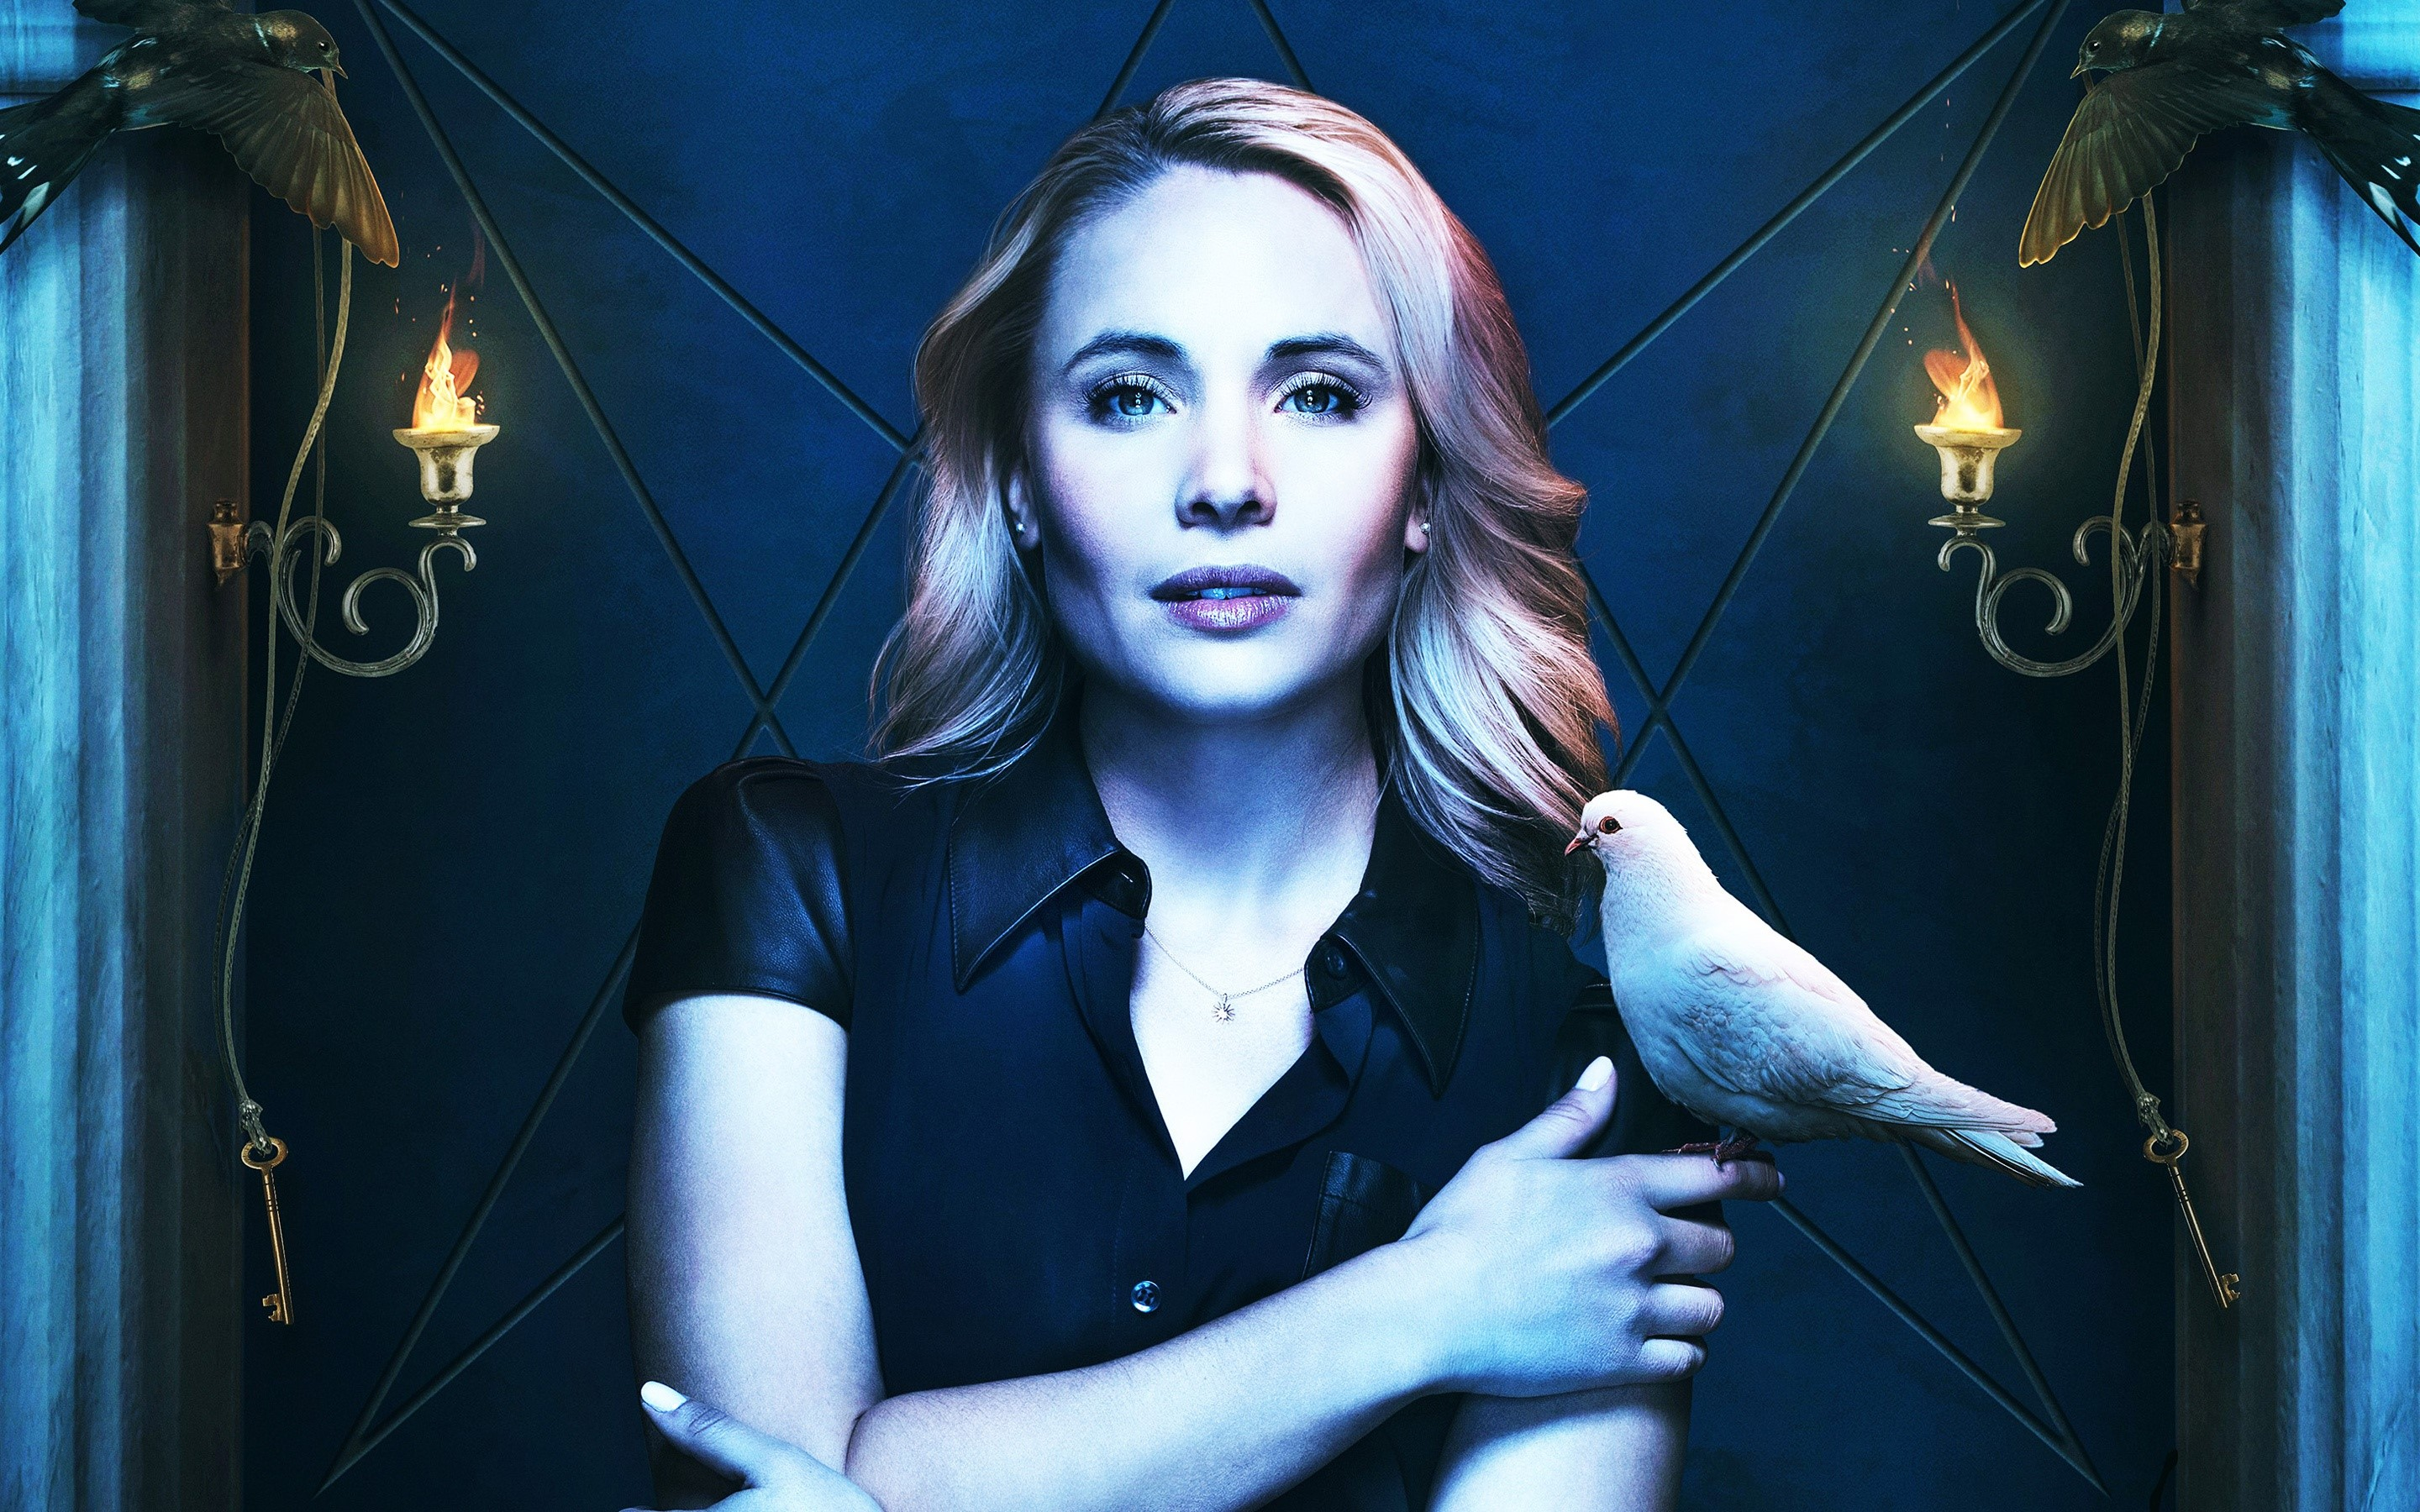 Wallpaper Leah Pipes as Cami in The Originals